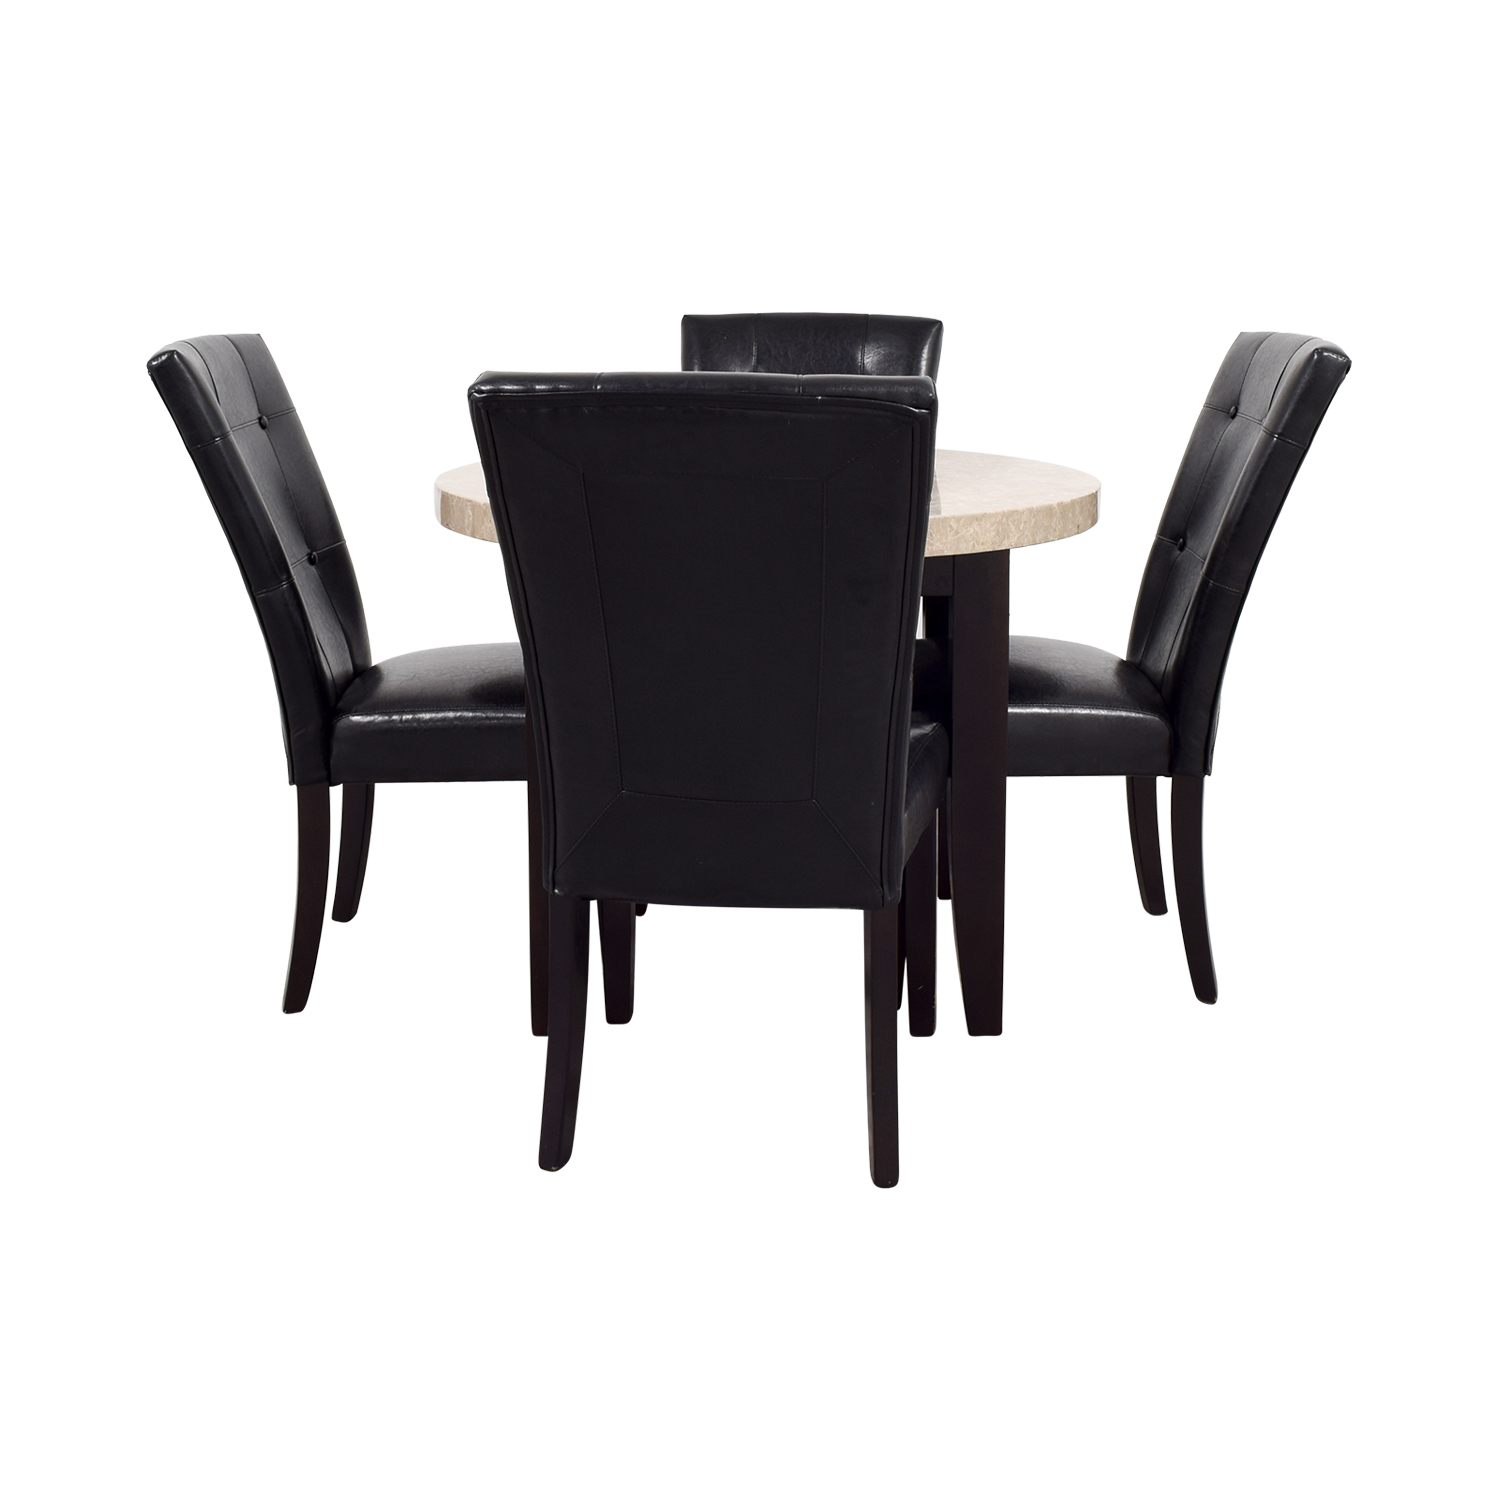 buy Bobs Furniture Bobs Furniture Black and Tan Marble Dining Set online